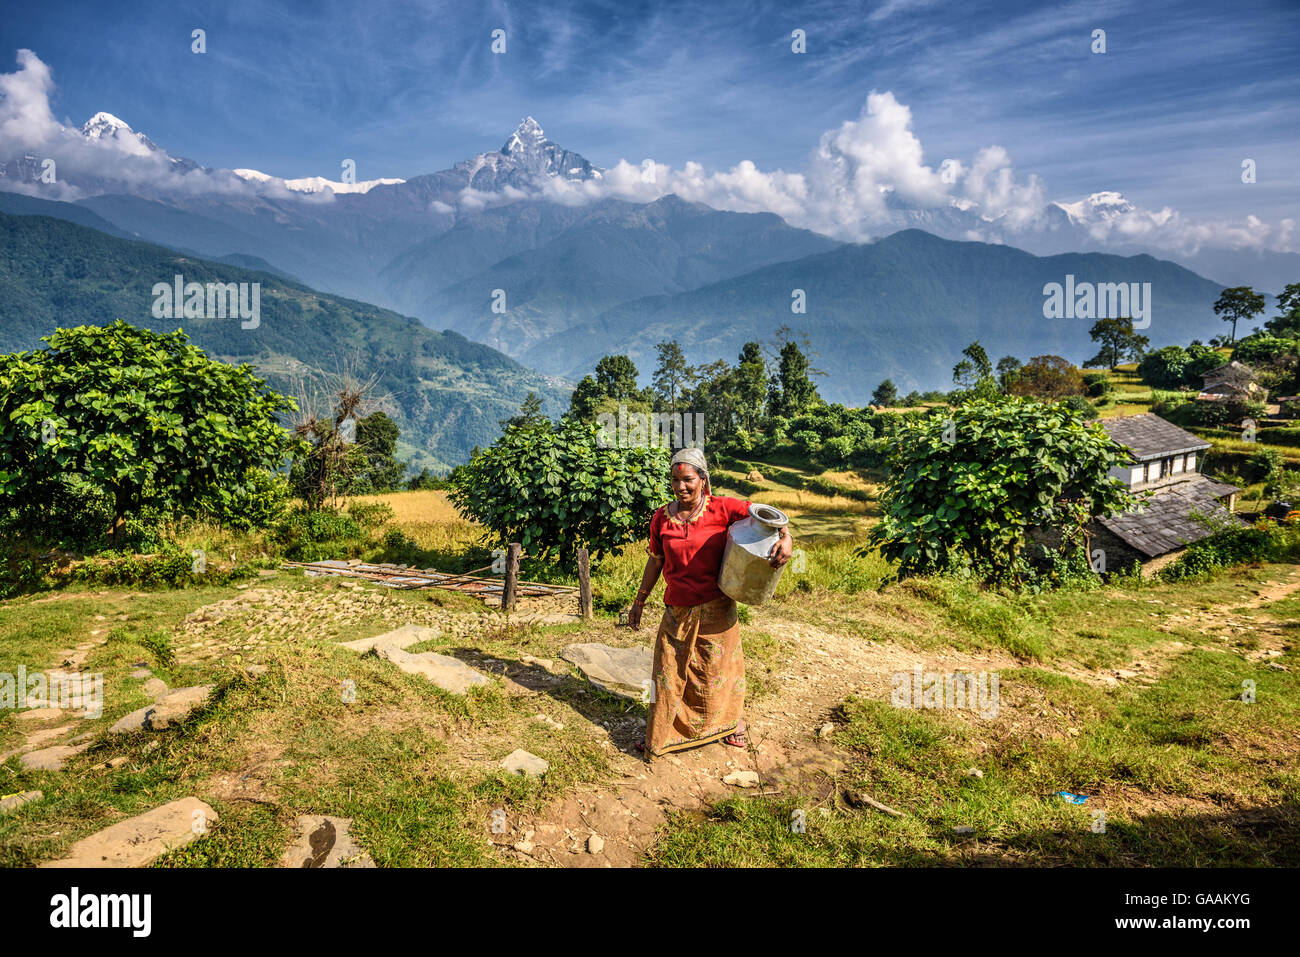 Nepalese woman in front of her home in the Himalayas mountains near Pokhara - Stock Image